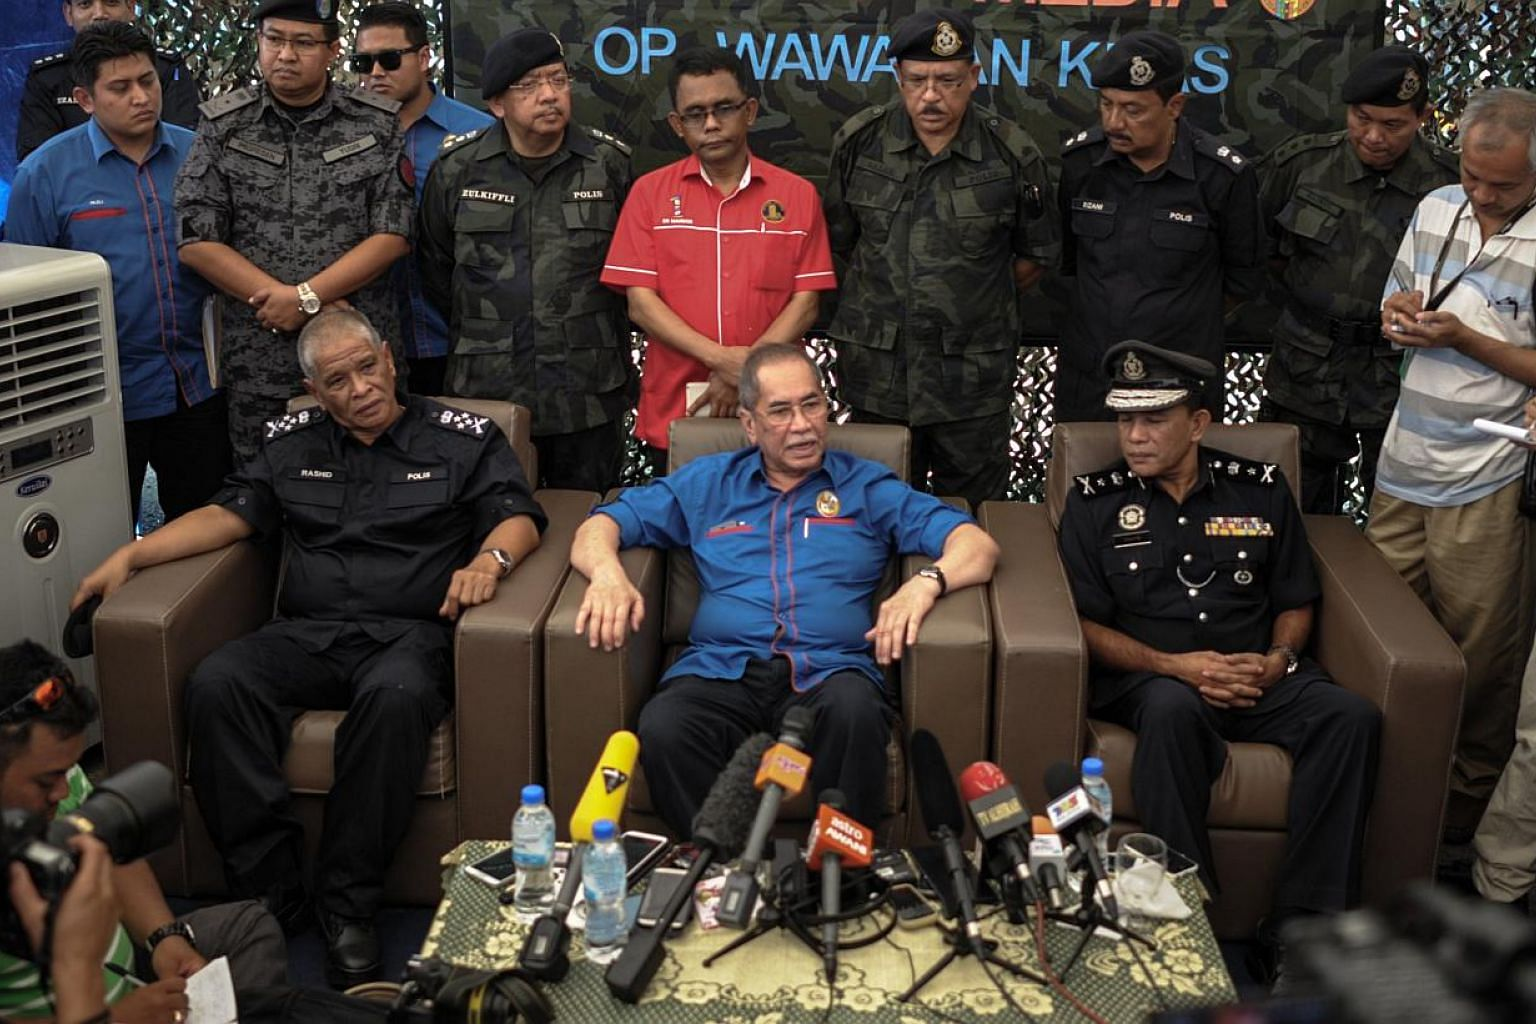 Malaysia's Deputy Home Minister Wan Junaidi Tuanku Jaafar (centre) speaks during a press conference after the government announced the discovery of camps and graves,near the Malaysia-Thailand border in Wang Kelian, on May 28, 2015. -- PHOTO: AFP